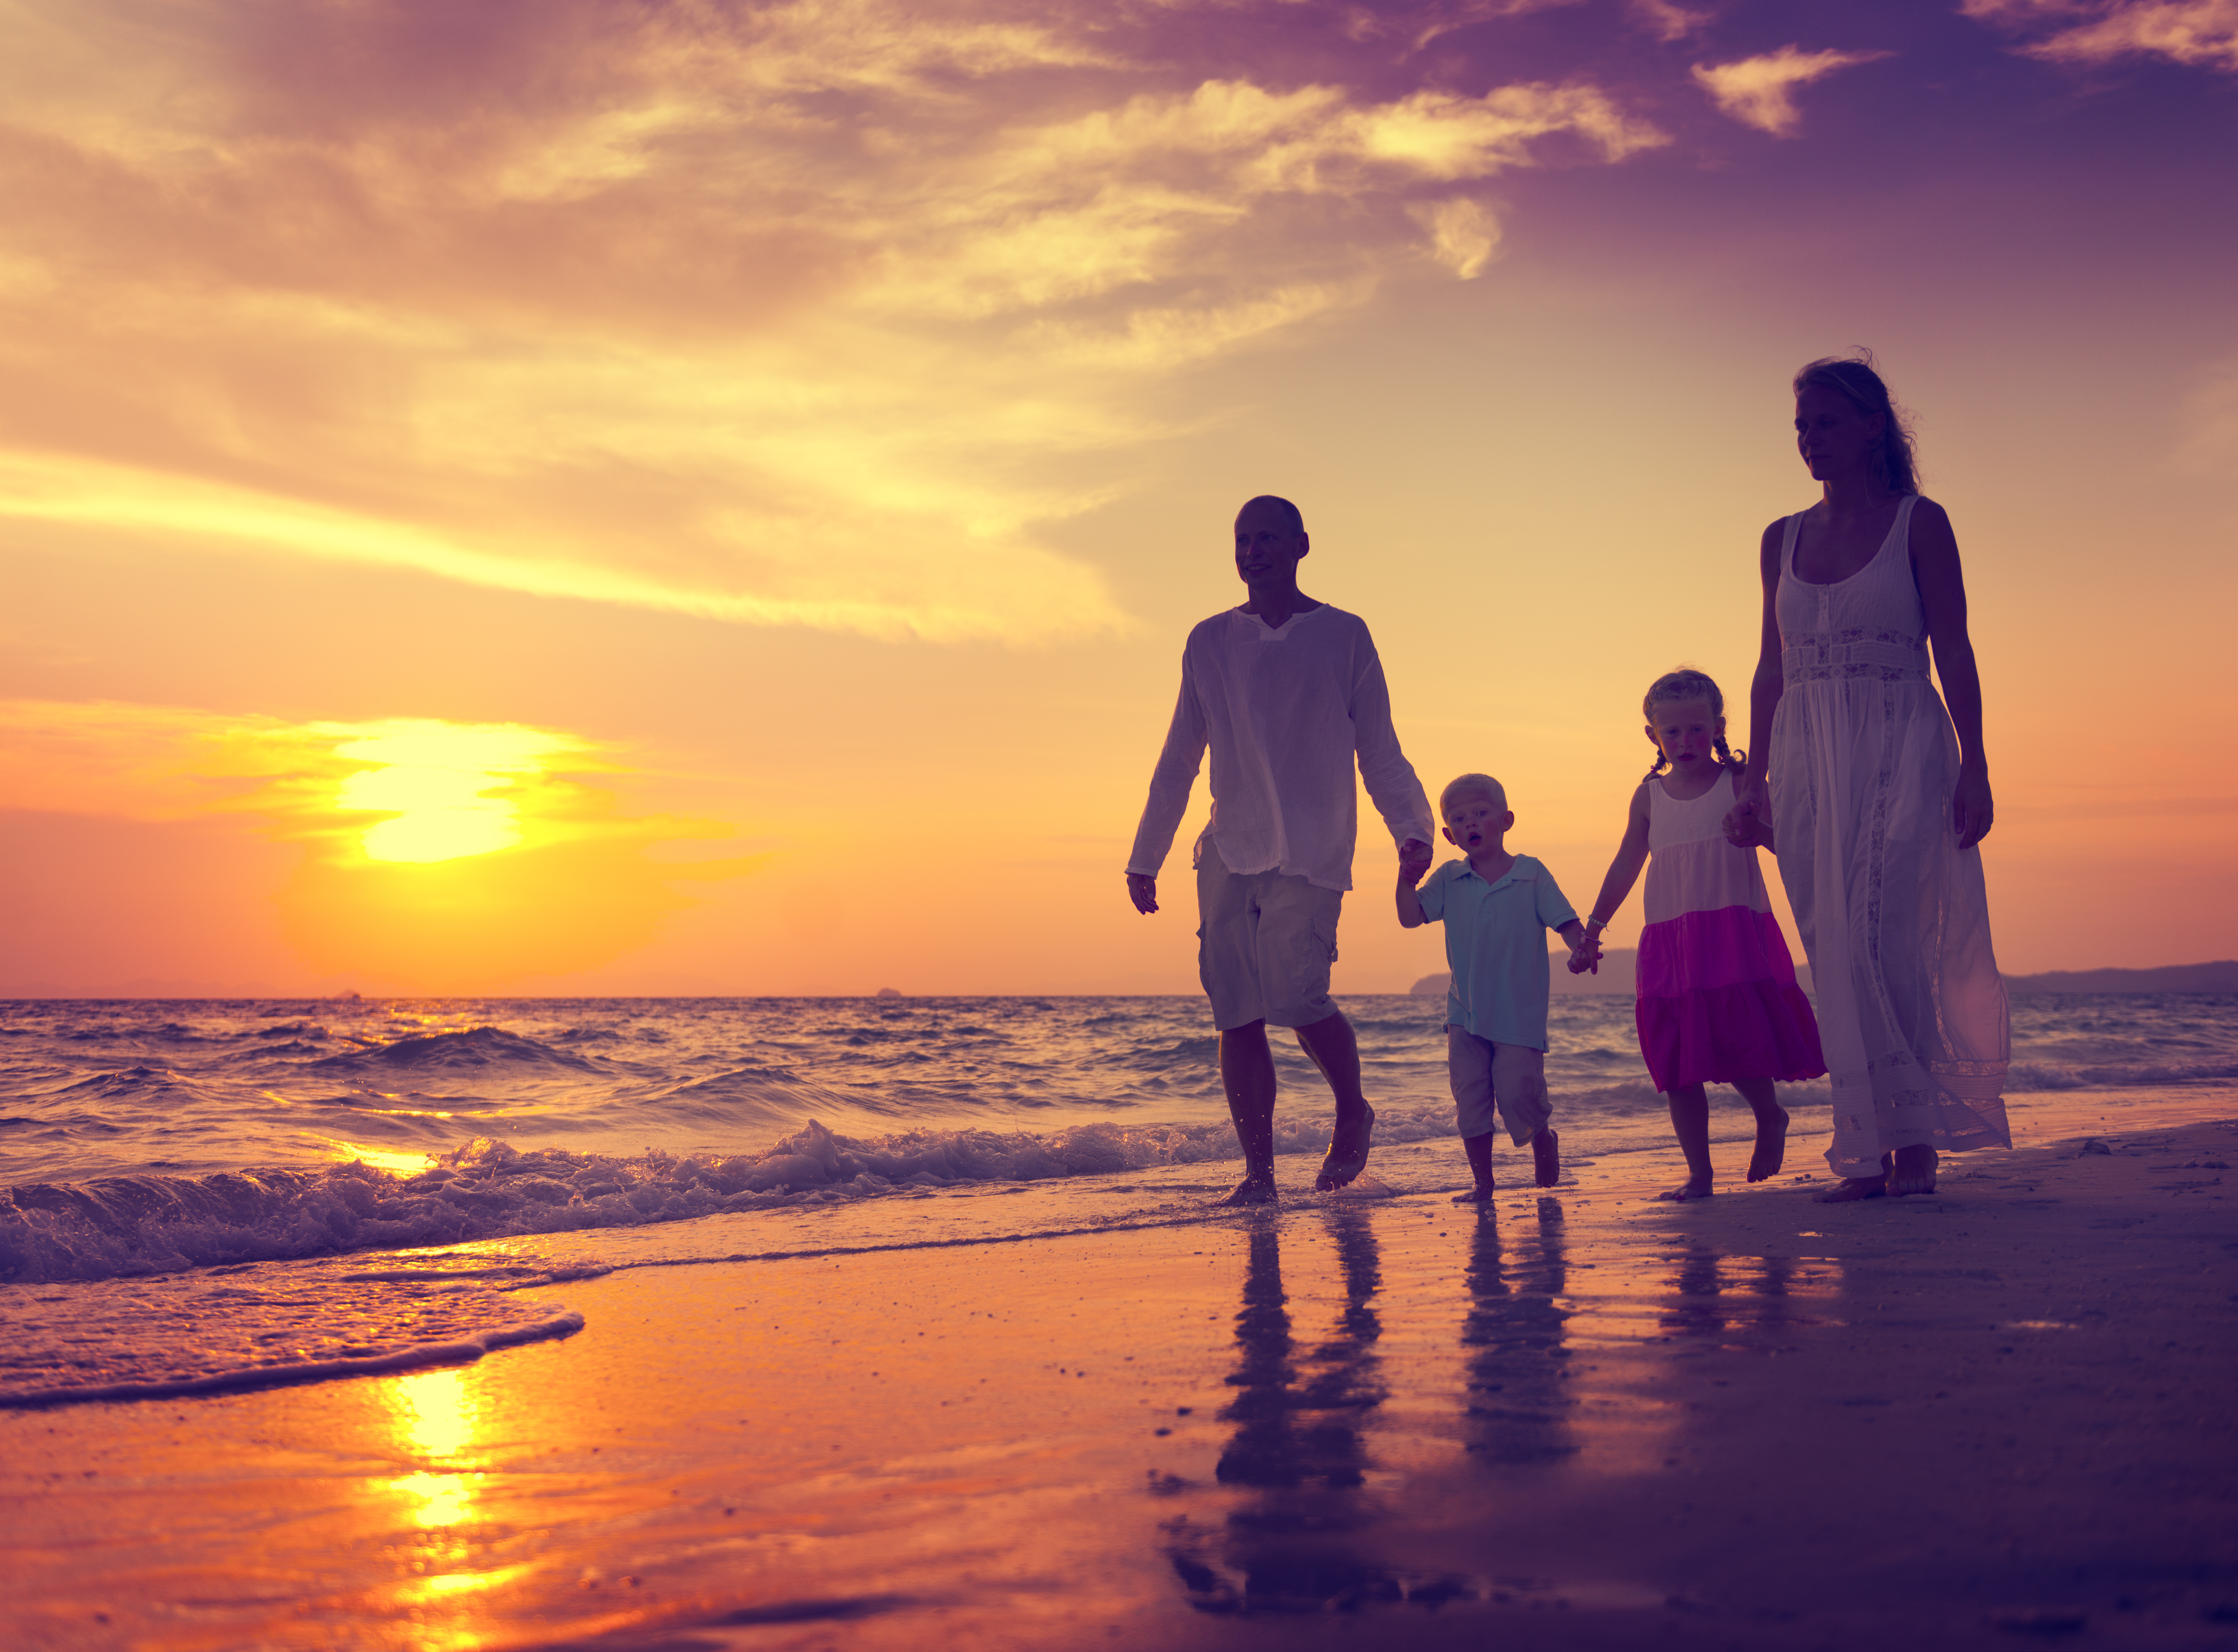 Family Walking Beach Sunset Travel Holid